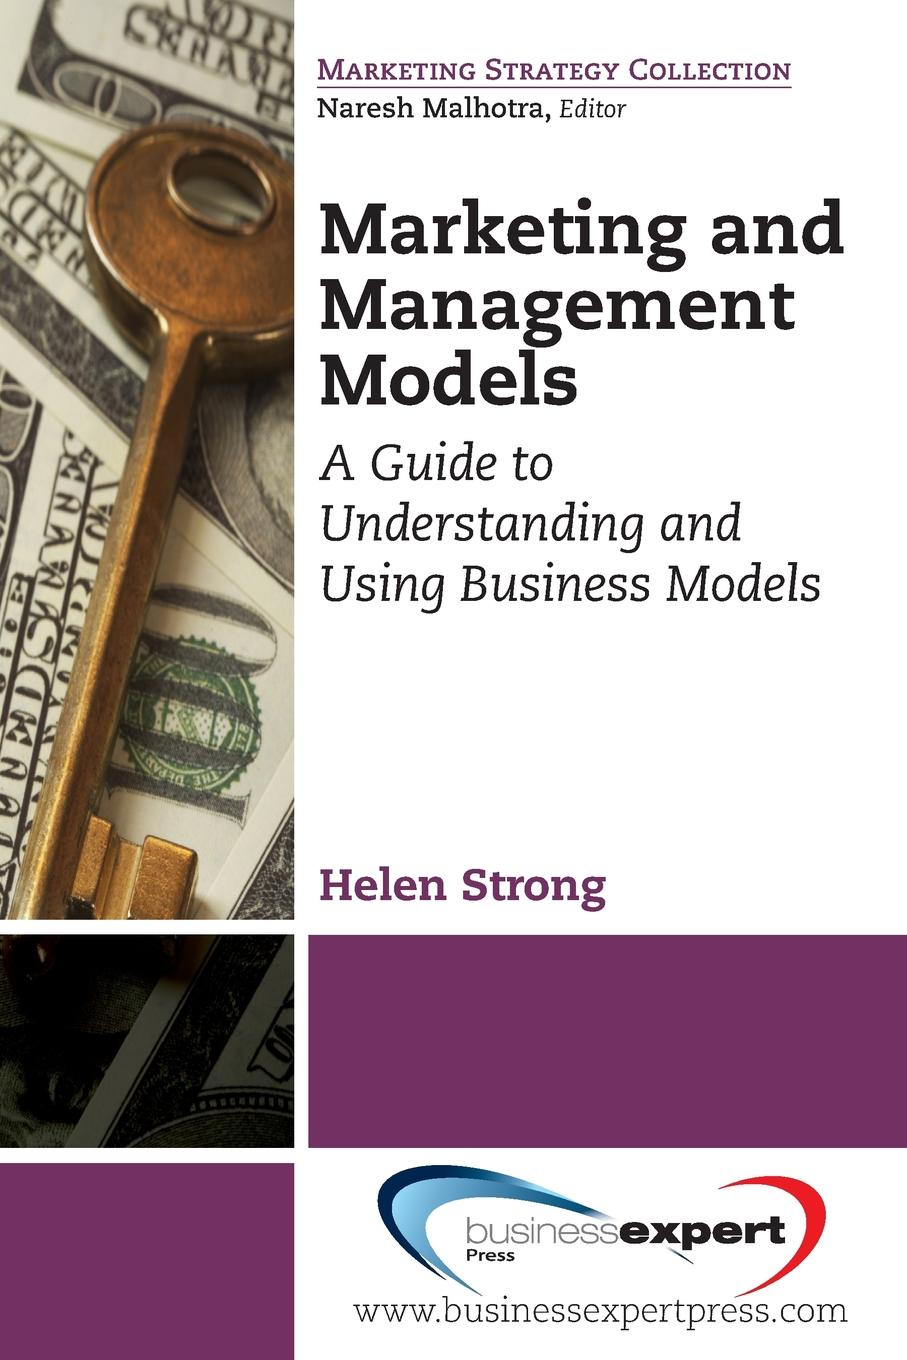 Helen Strong Marketing and Management Models. A Guide to Understanding and Using Business Models criss mills b designing with models a studio guide to architectural process models